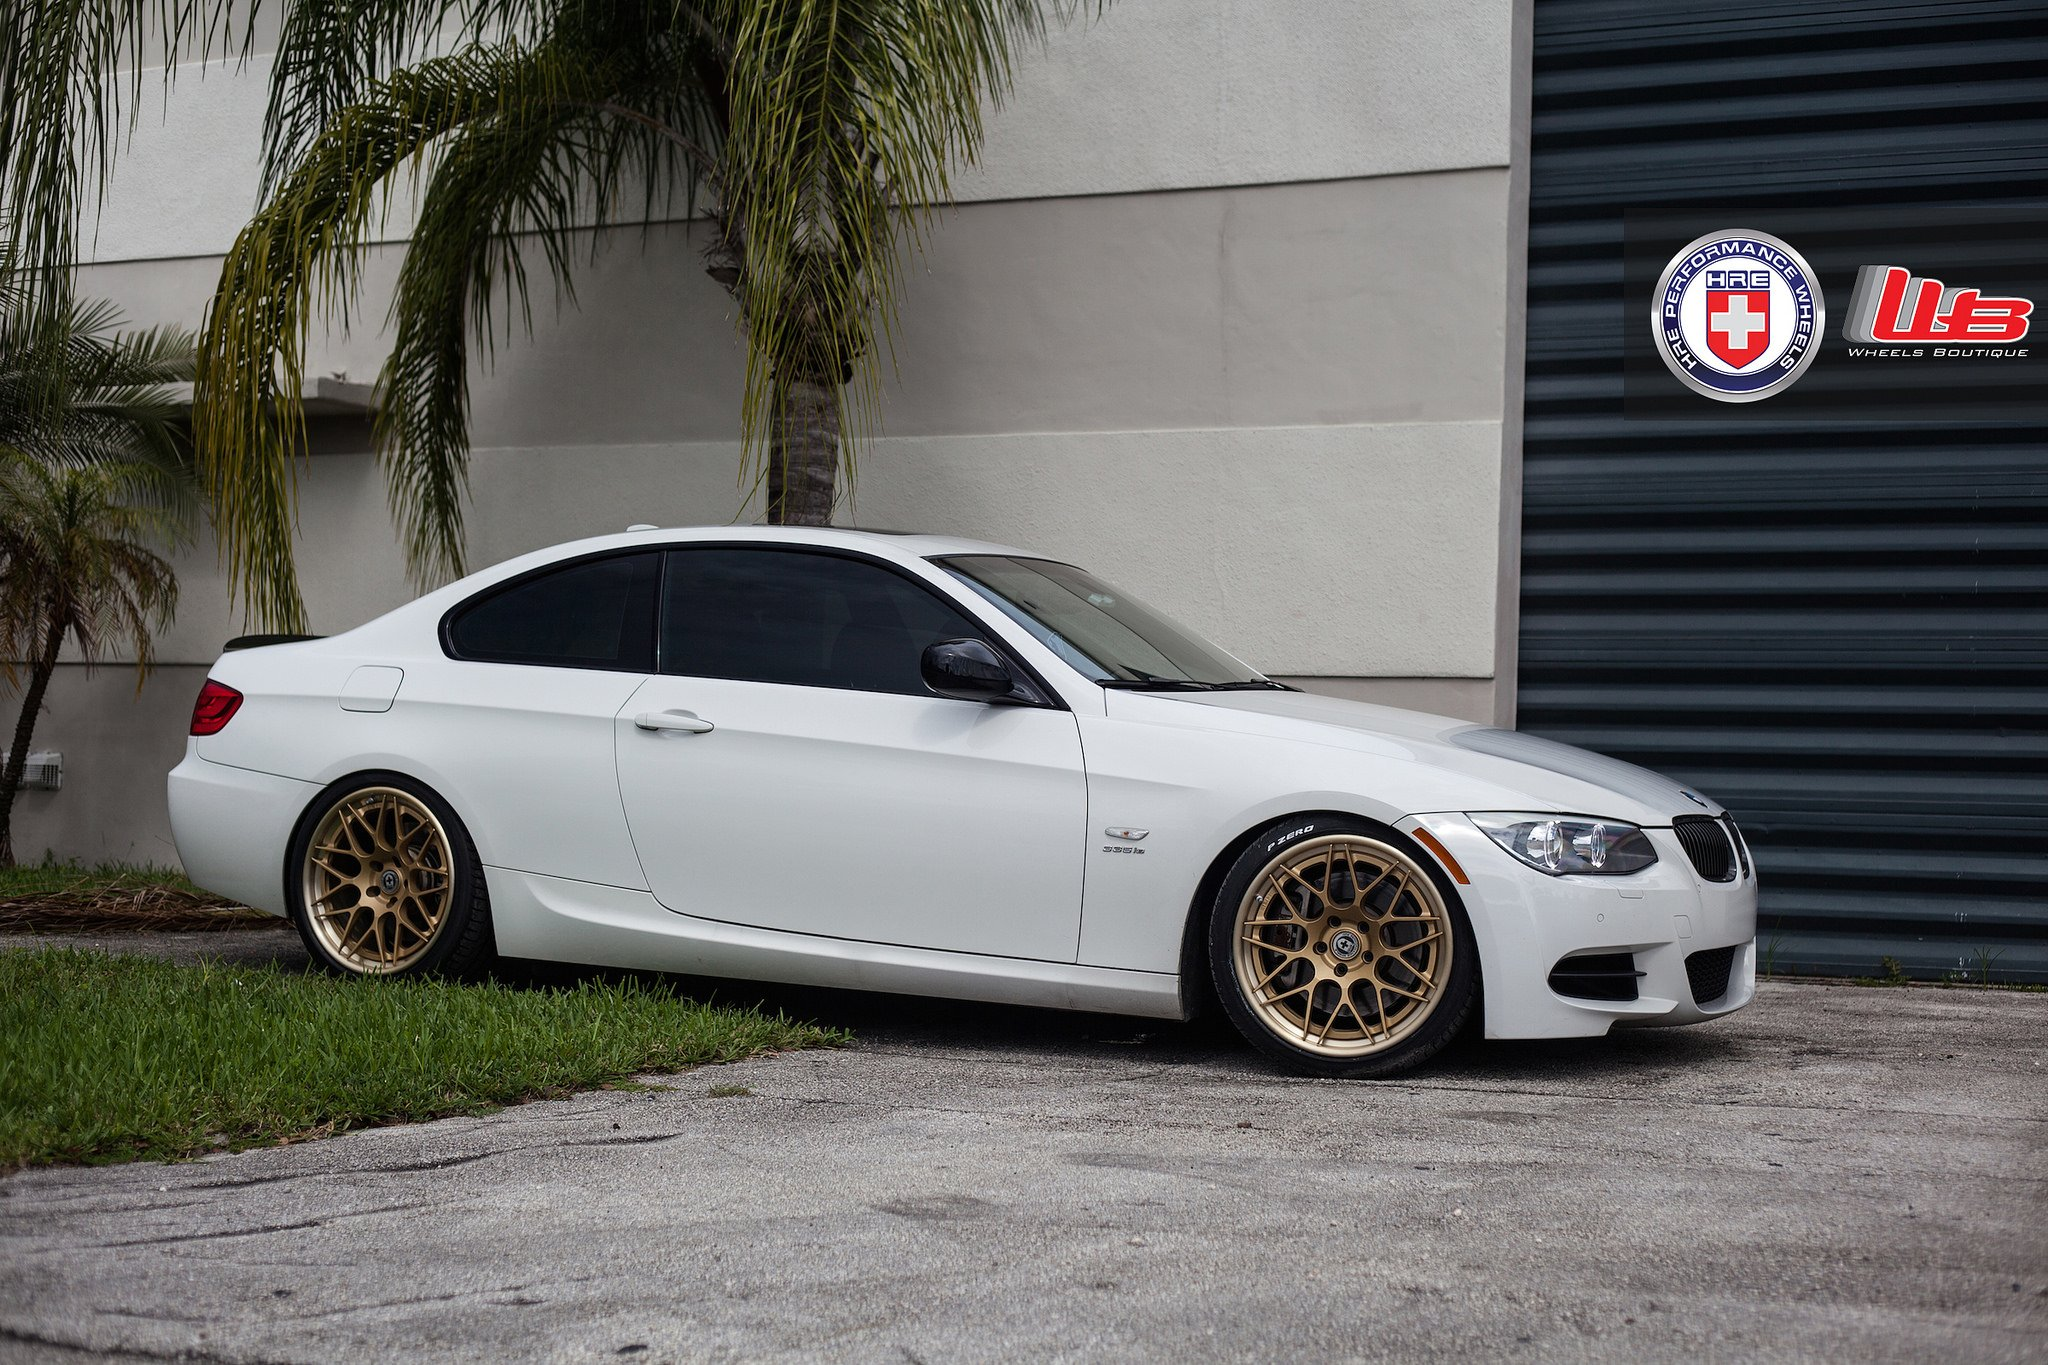 bmw 335i coupe hre wheels tuning cars wallpaper. Black Bedroom Furniture Sets. Home Design Ideas